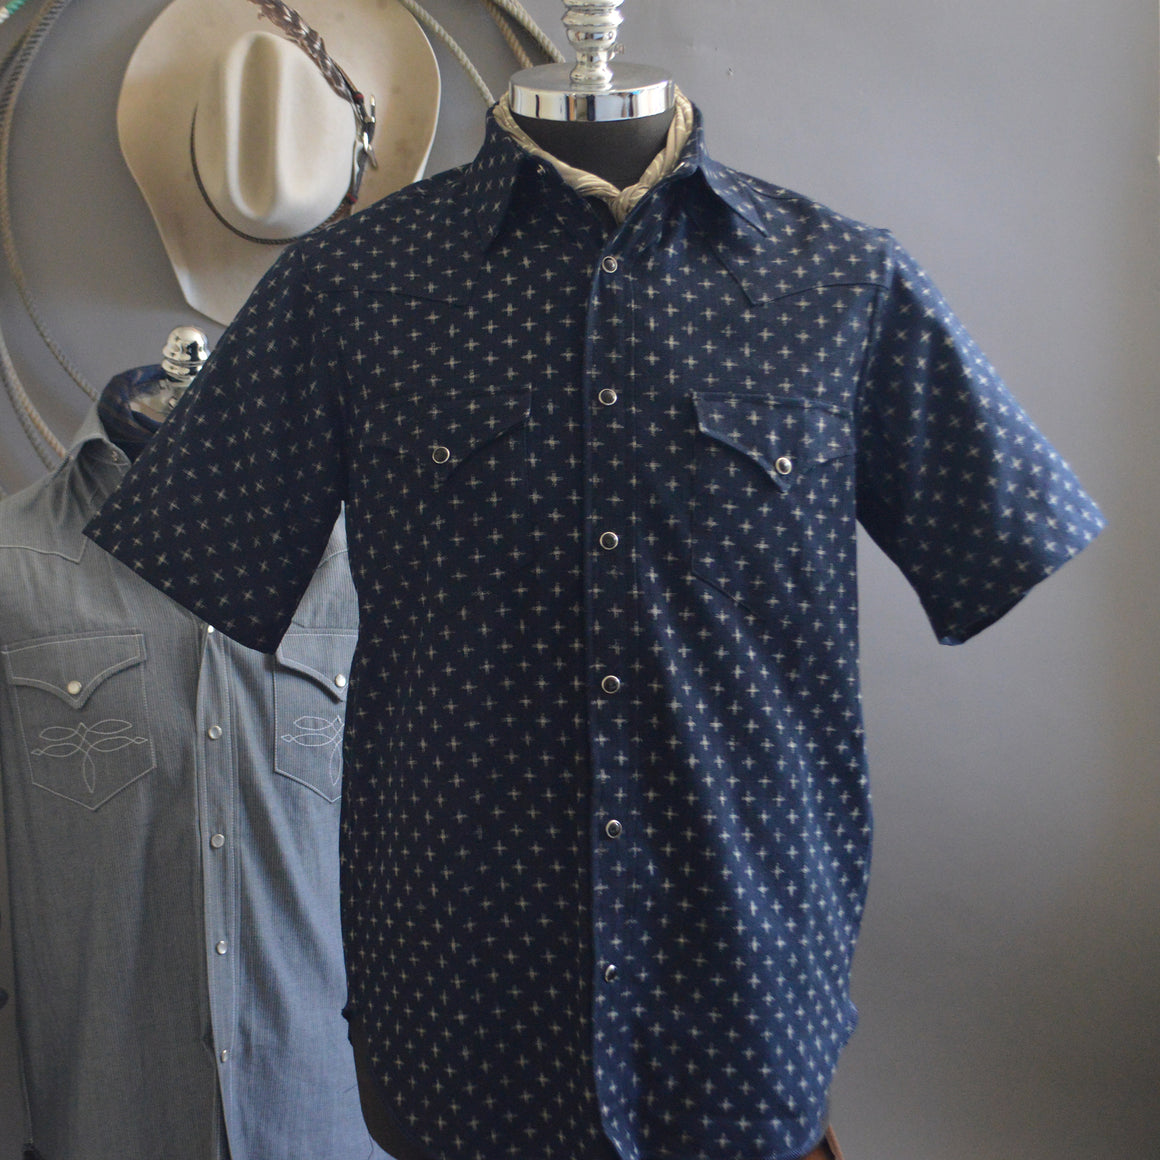 The Cowboy- Crossroads Edition Short Sleeve Indigo Dyed Western Shirt